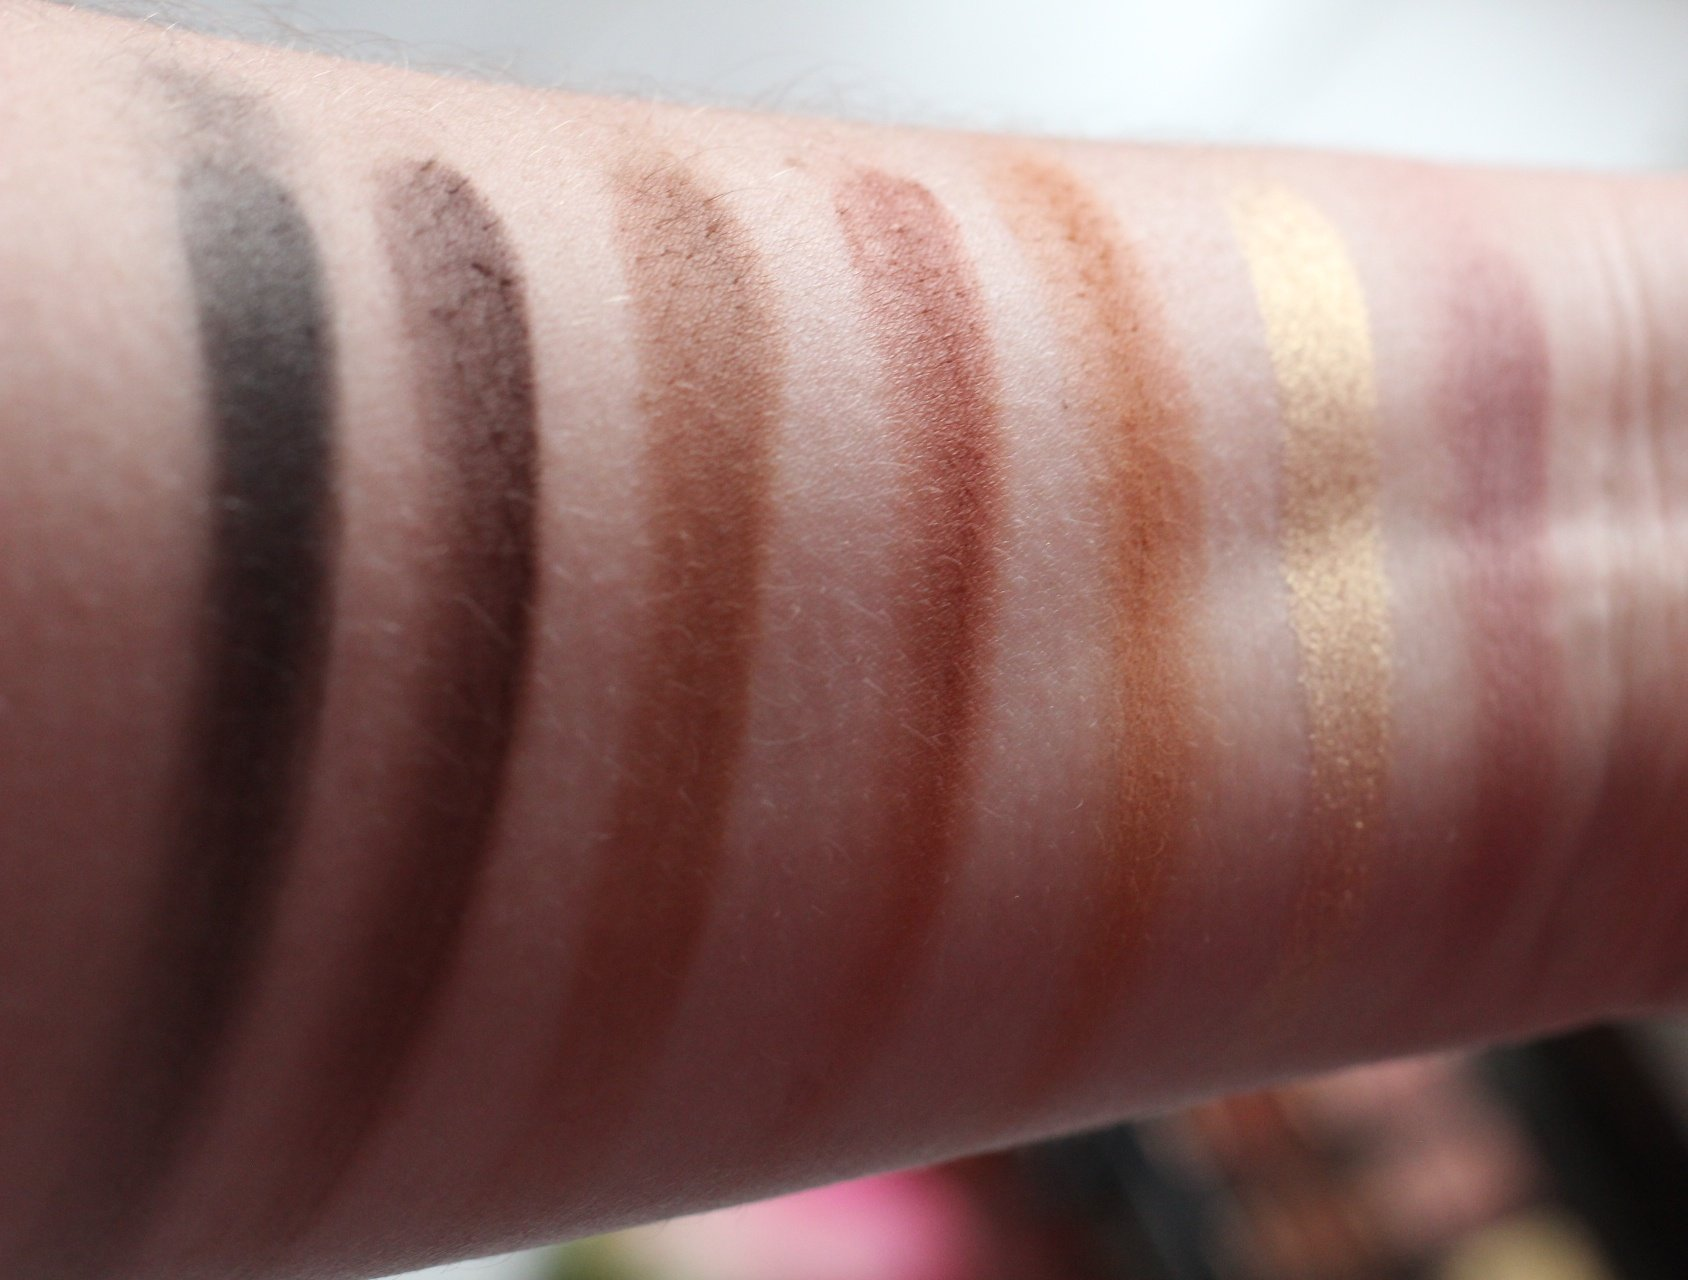 Anastasia Beverly Hills Soft Glam Eyeshadow Palette Review and Swatches 6.jpeg